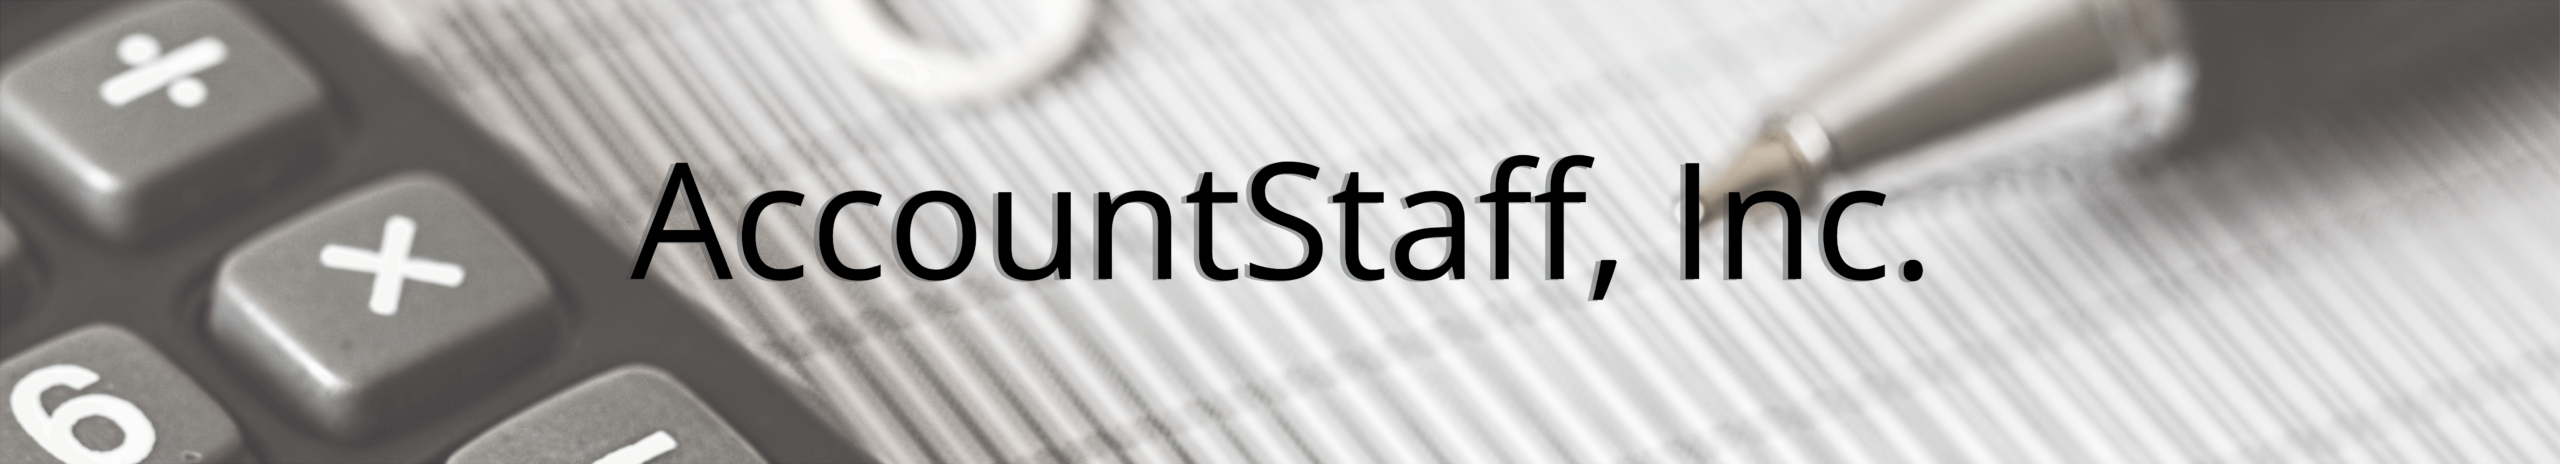 AccountStaff, Inc. Header - Image of a calculator and pen laid on a notebook with the words AccountStaff, Inc. overlaid on top.